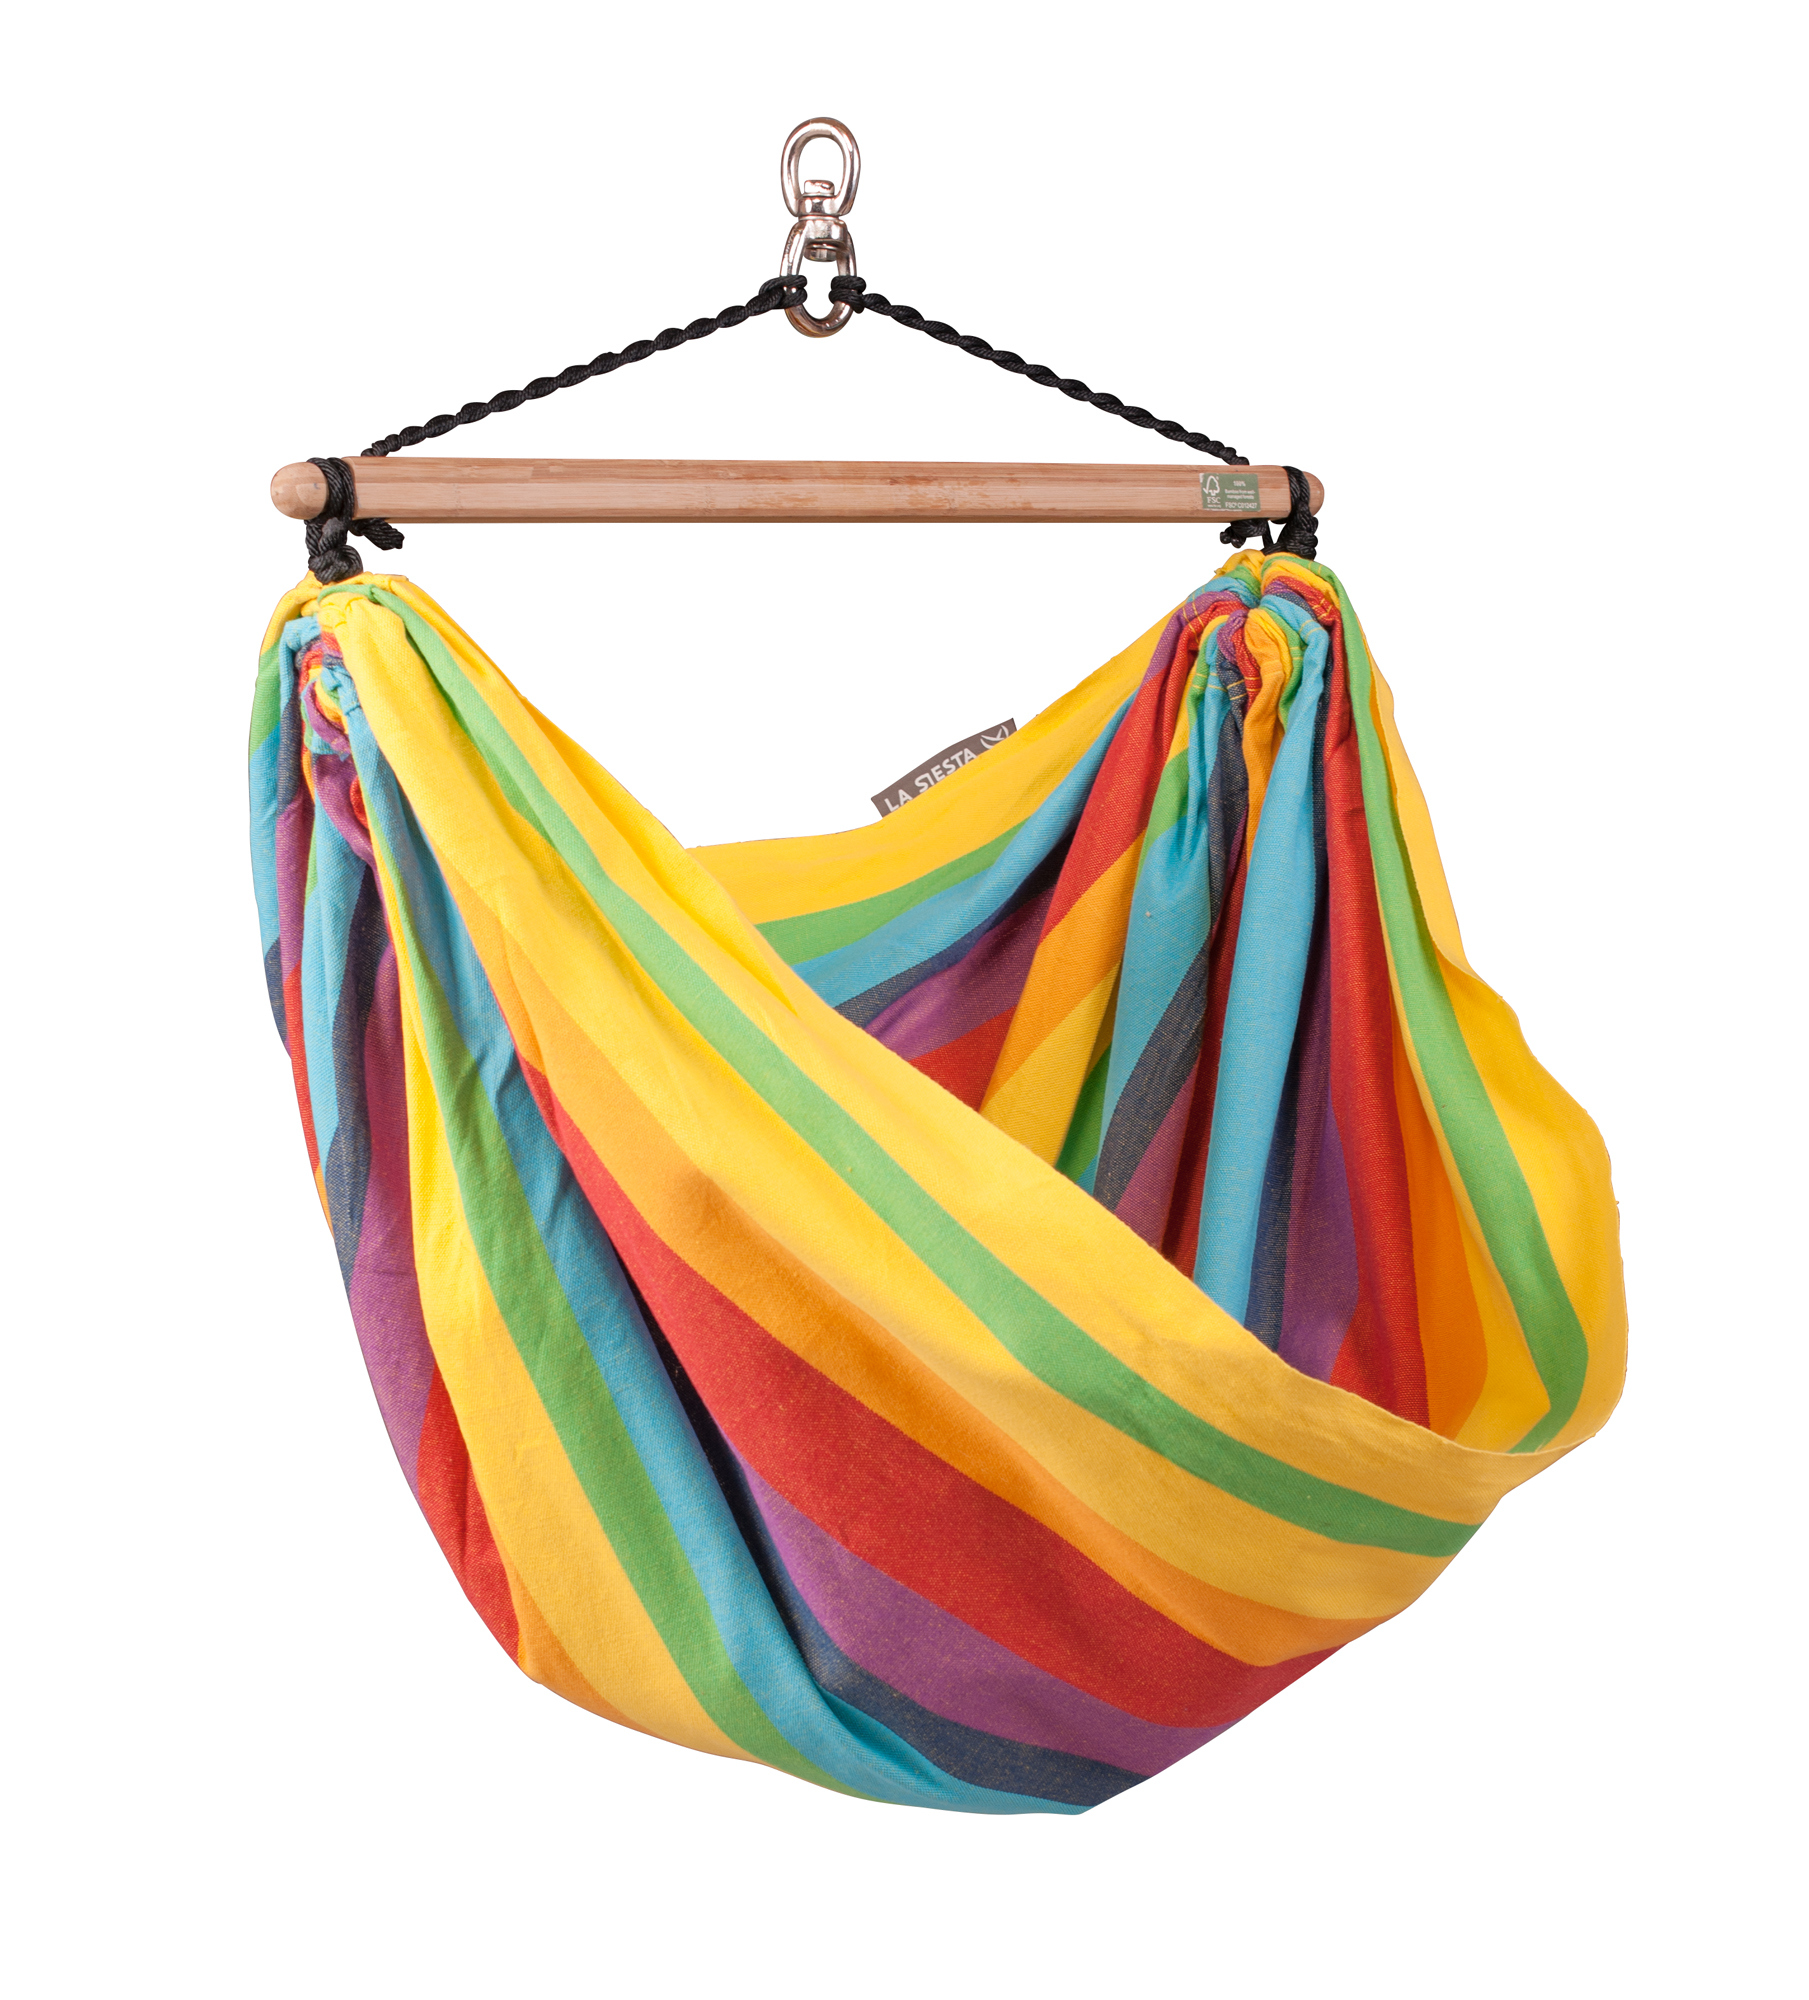 iri rainbow hammock chair iri rainbow hammock chair   shop   camel kidz  rh   camelkidz